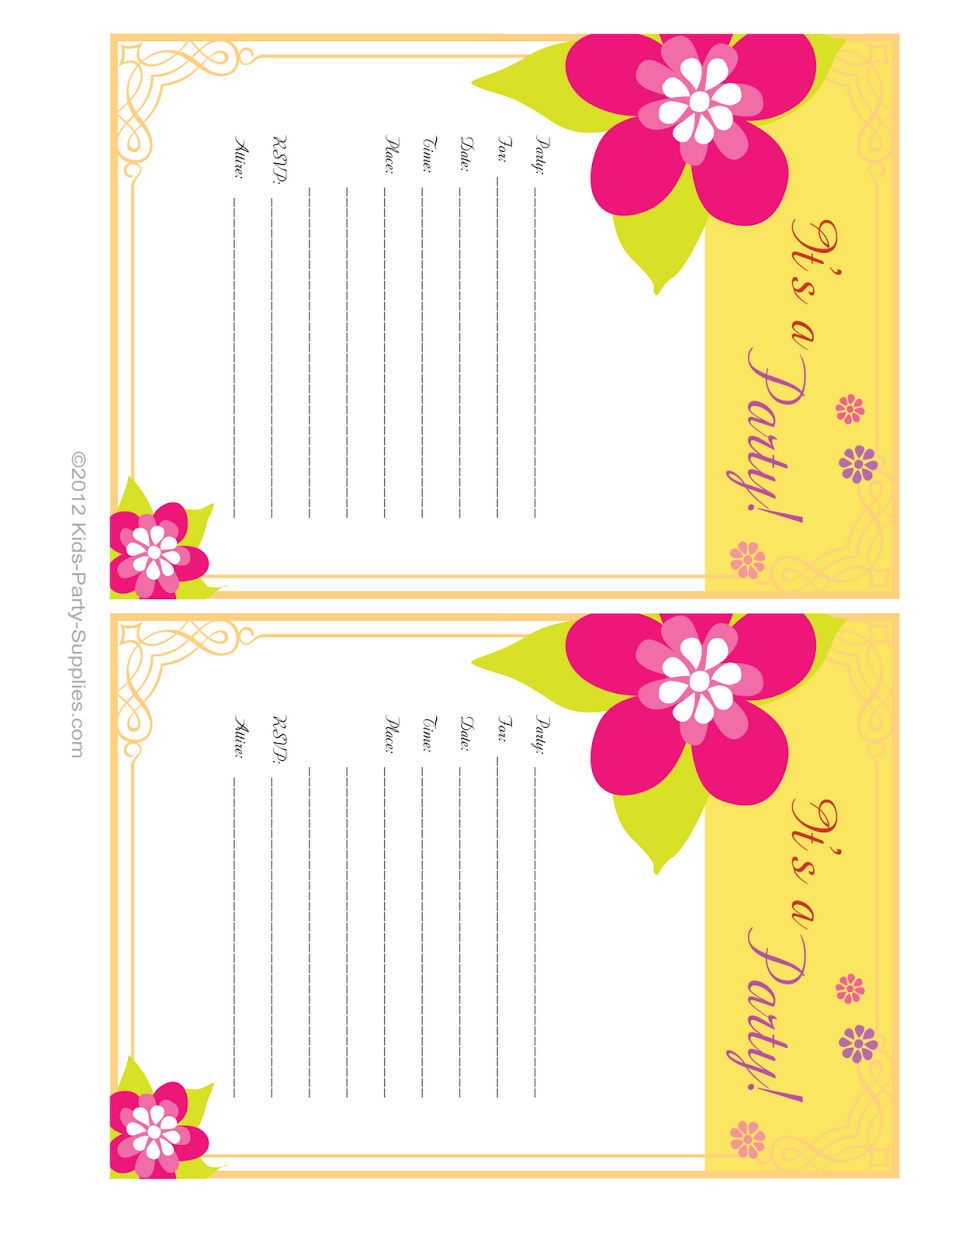 7 Images of Free Printable Luau Birthday Party Invitations